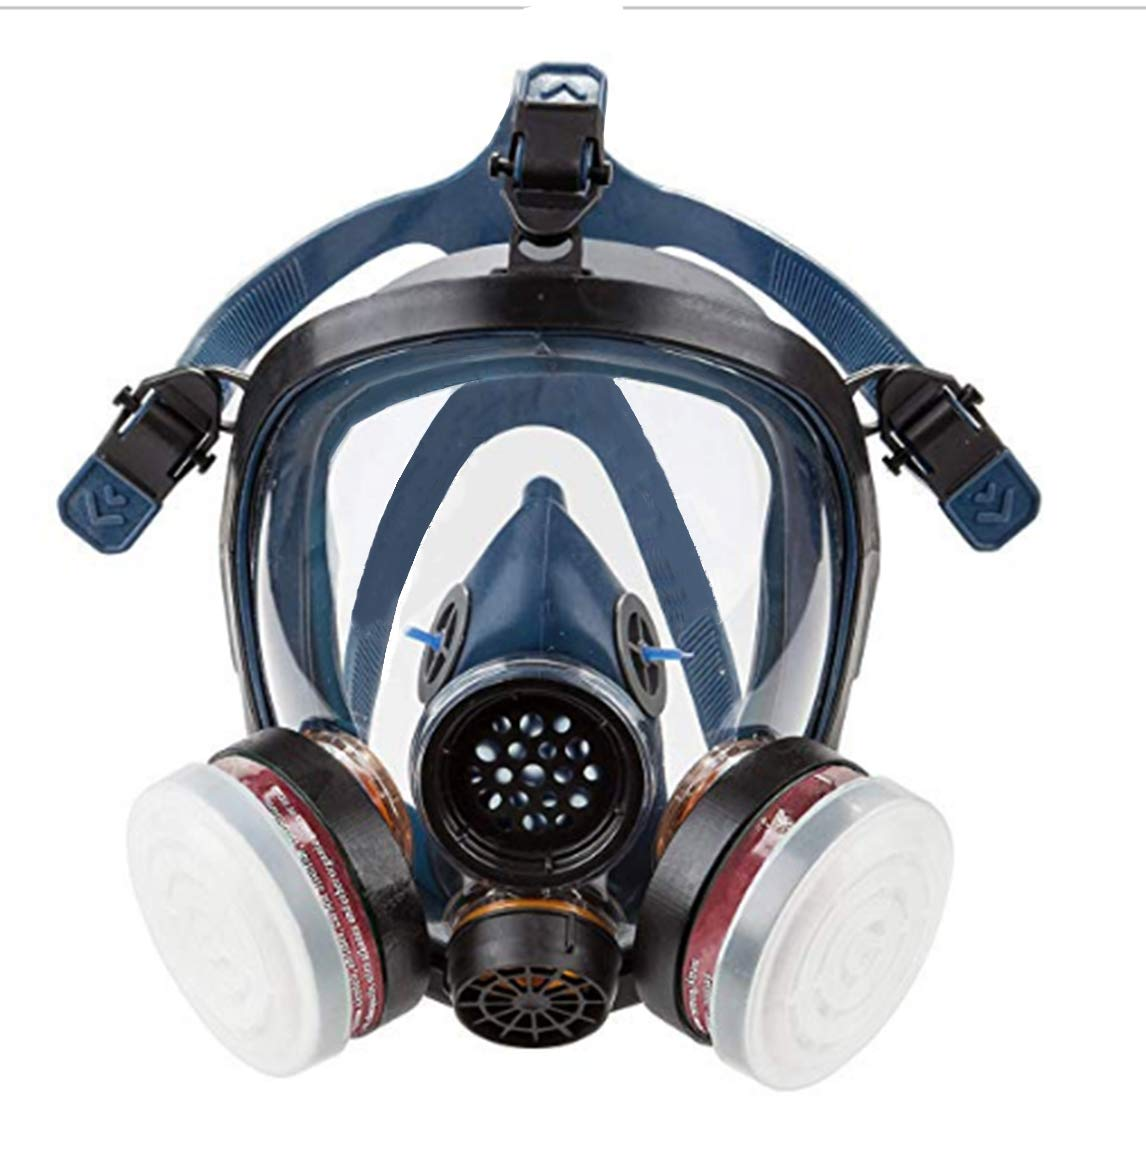 Full Face Organic Vapor Respirator Gas Mask for Paint Pesticide Chemicals Fire Smoke Dust Breathing Protection (Respirator +1 Pair LDY3 Cartridge)